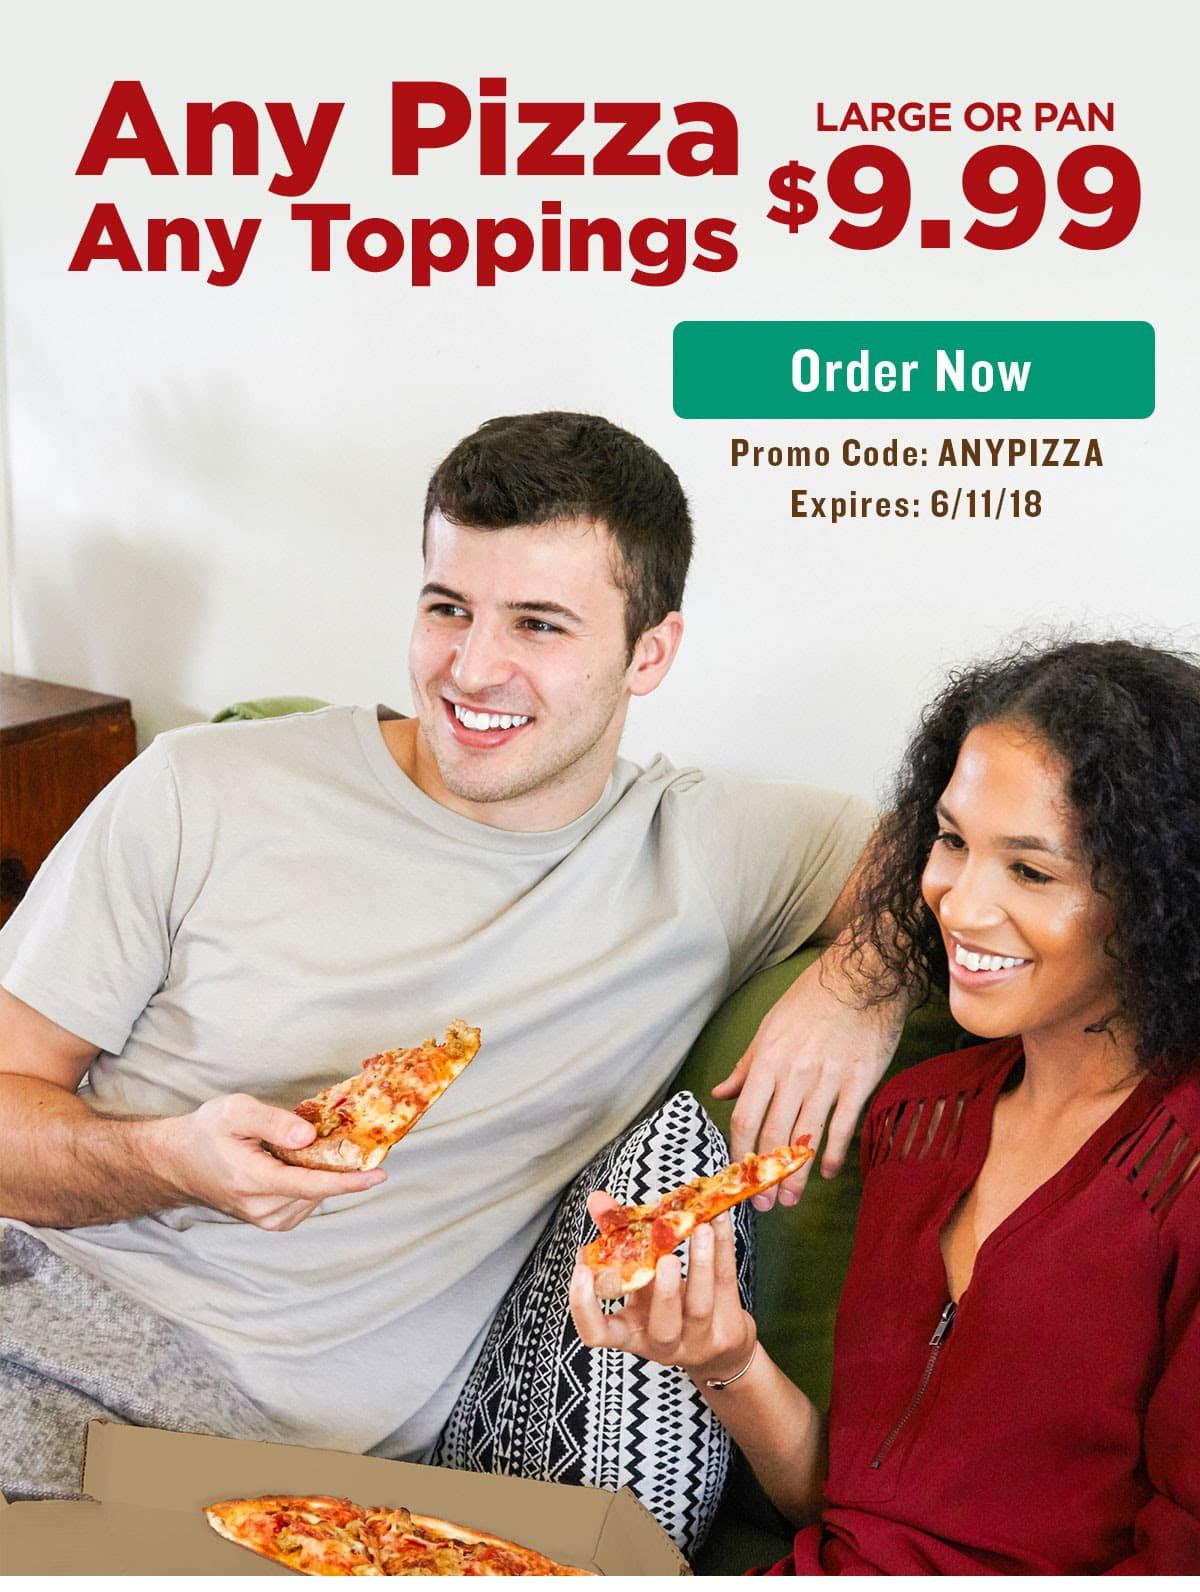 Papa Johns: Get large or pan ANY topping pizza for $9.99 using code ANYPIZZA (YMMV) good through 6/11